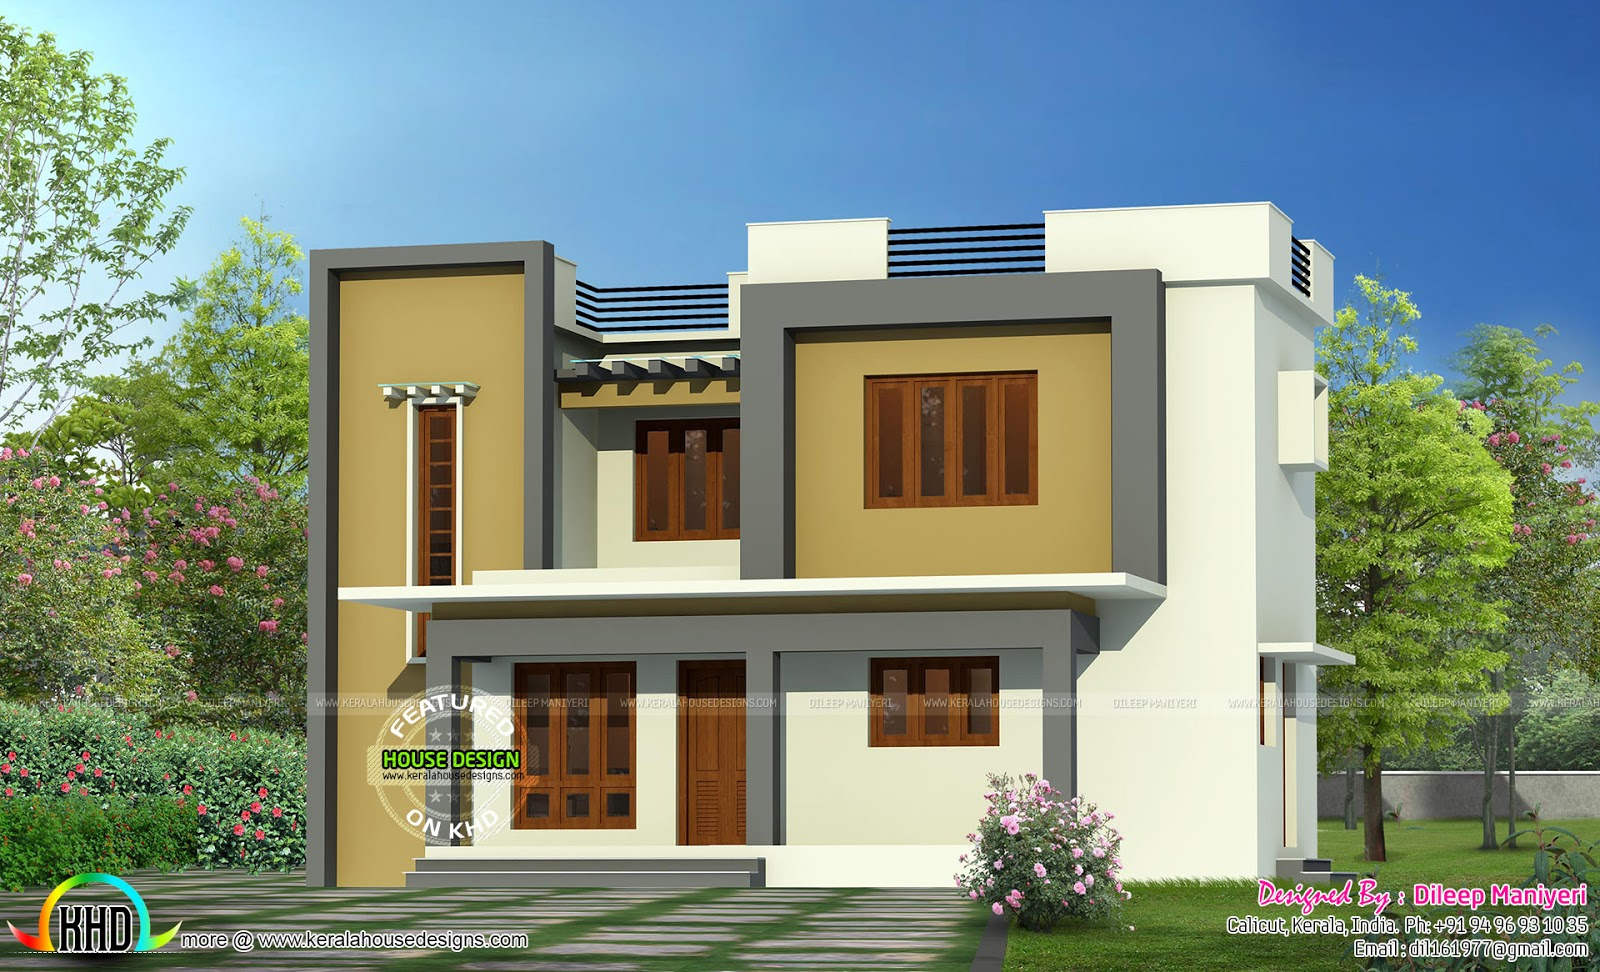 simple flat roof home architecture kerala home design